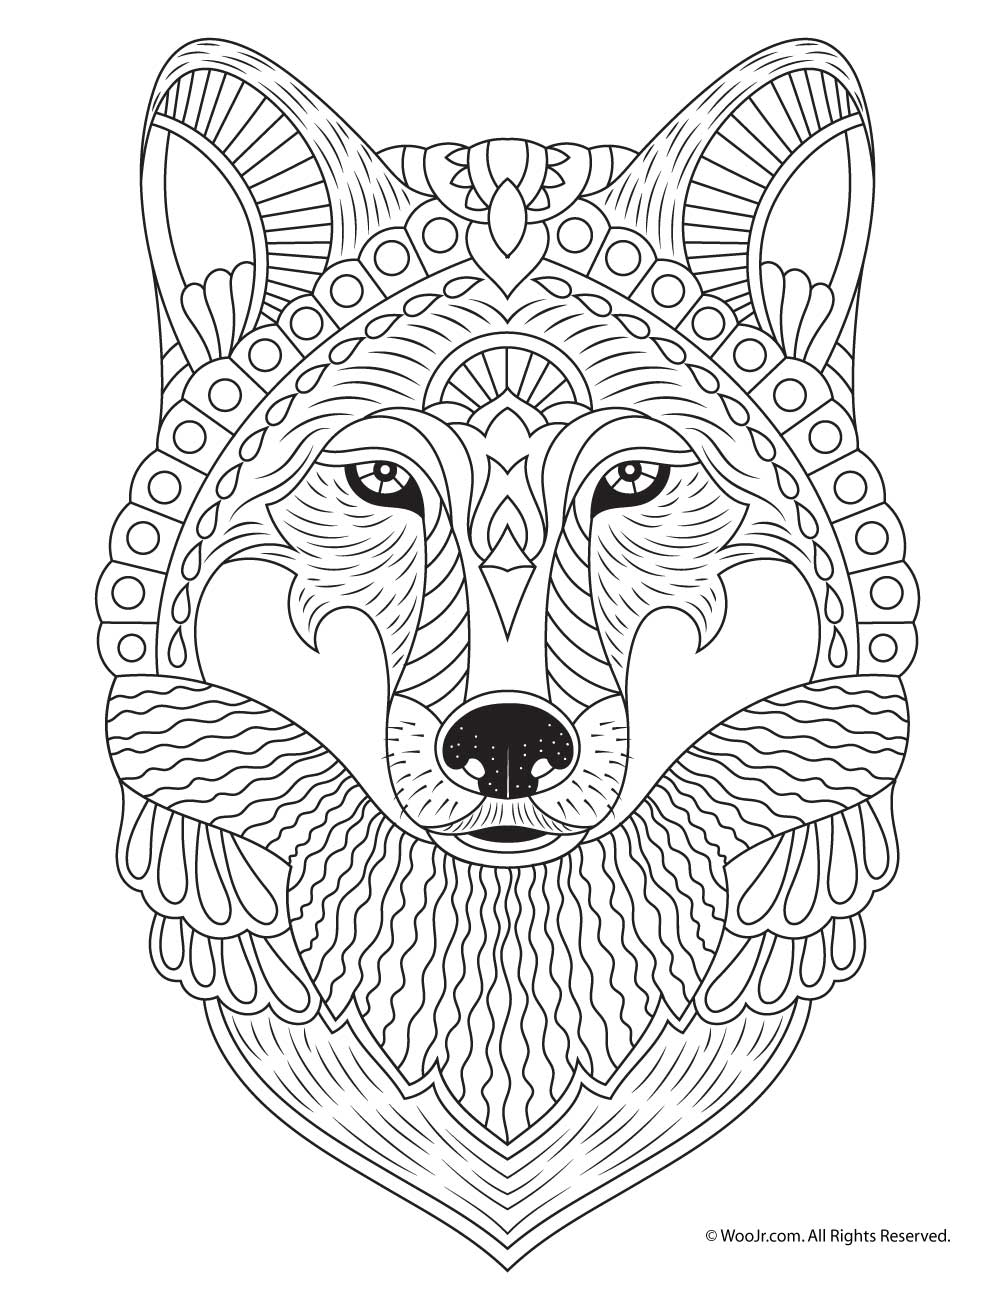 Wolf Adult Coloring Page | Woo! Jr. Kids Activities | free printable coloring pages for adults animals